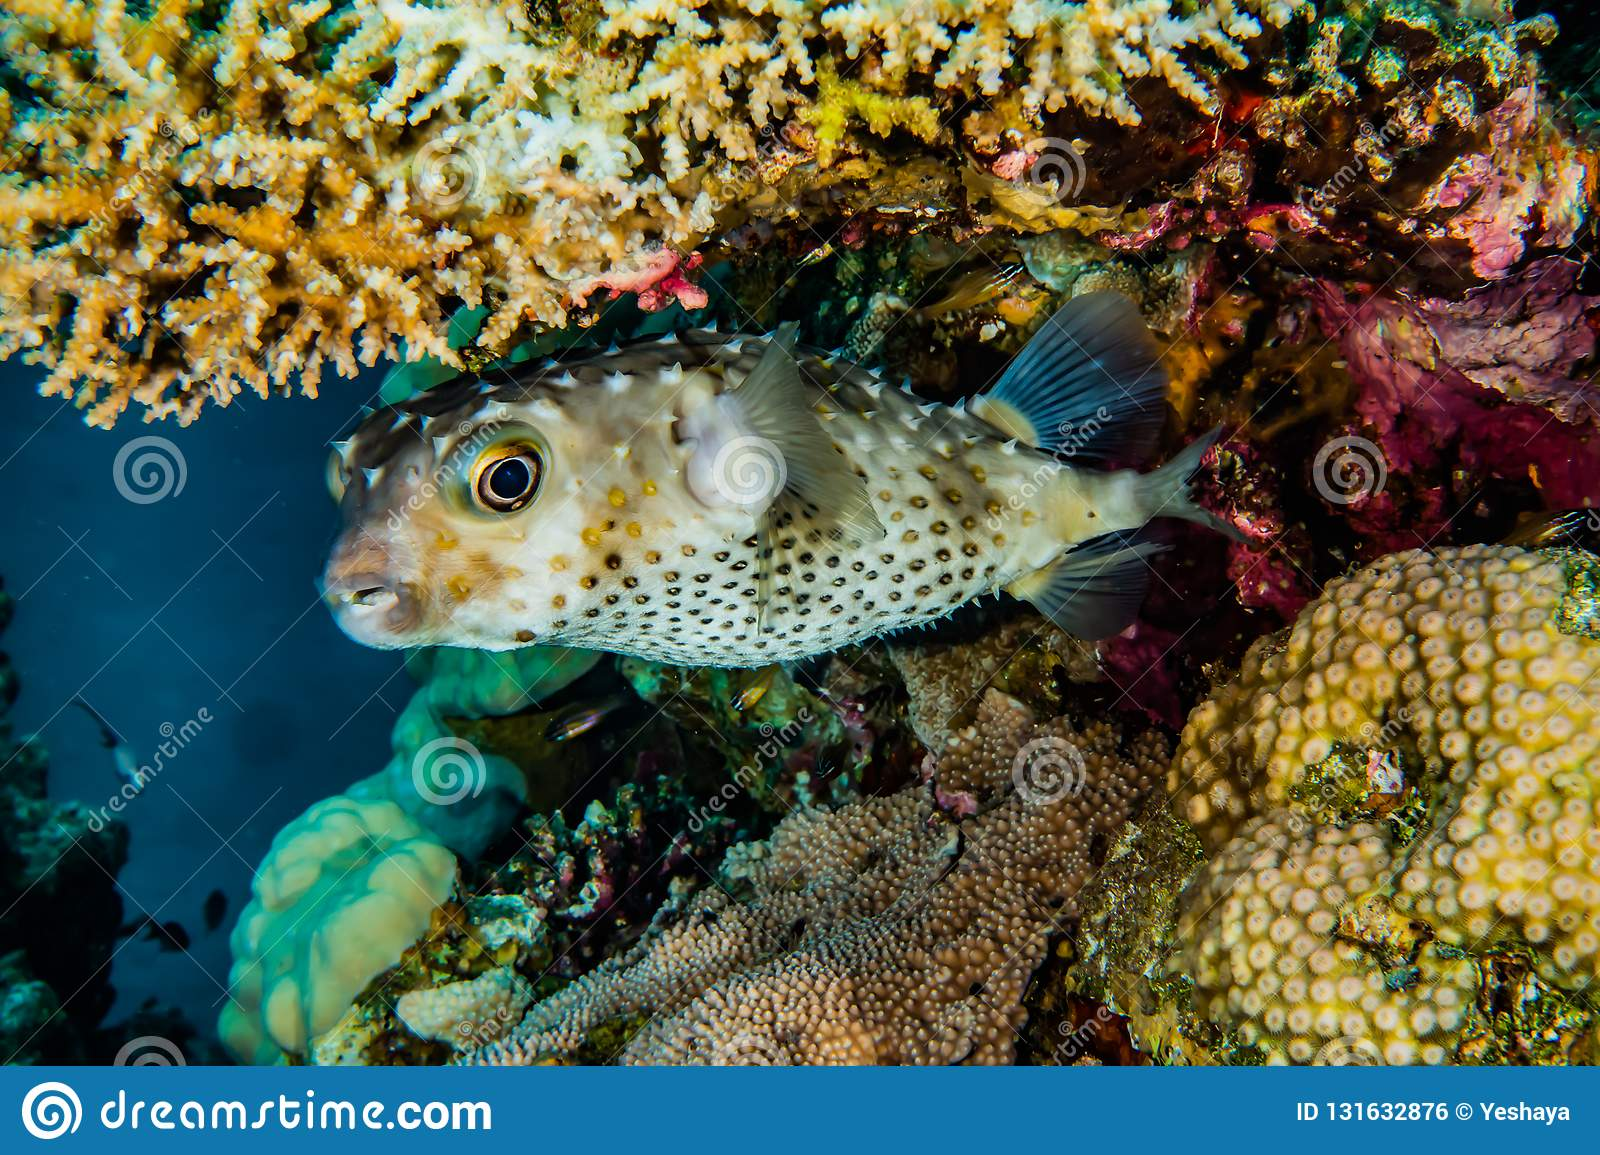 Diodon fish in the Red Sea Colorful and beautiful